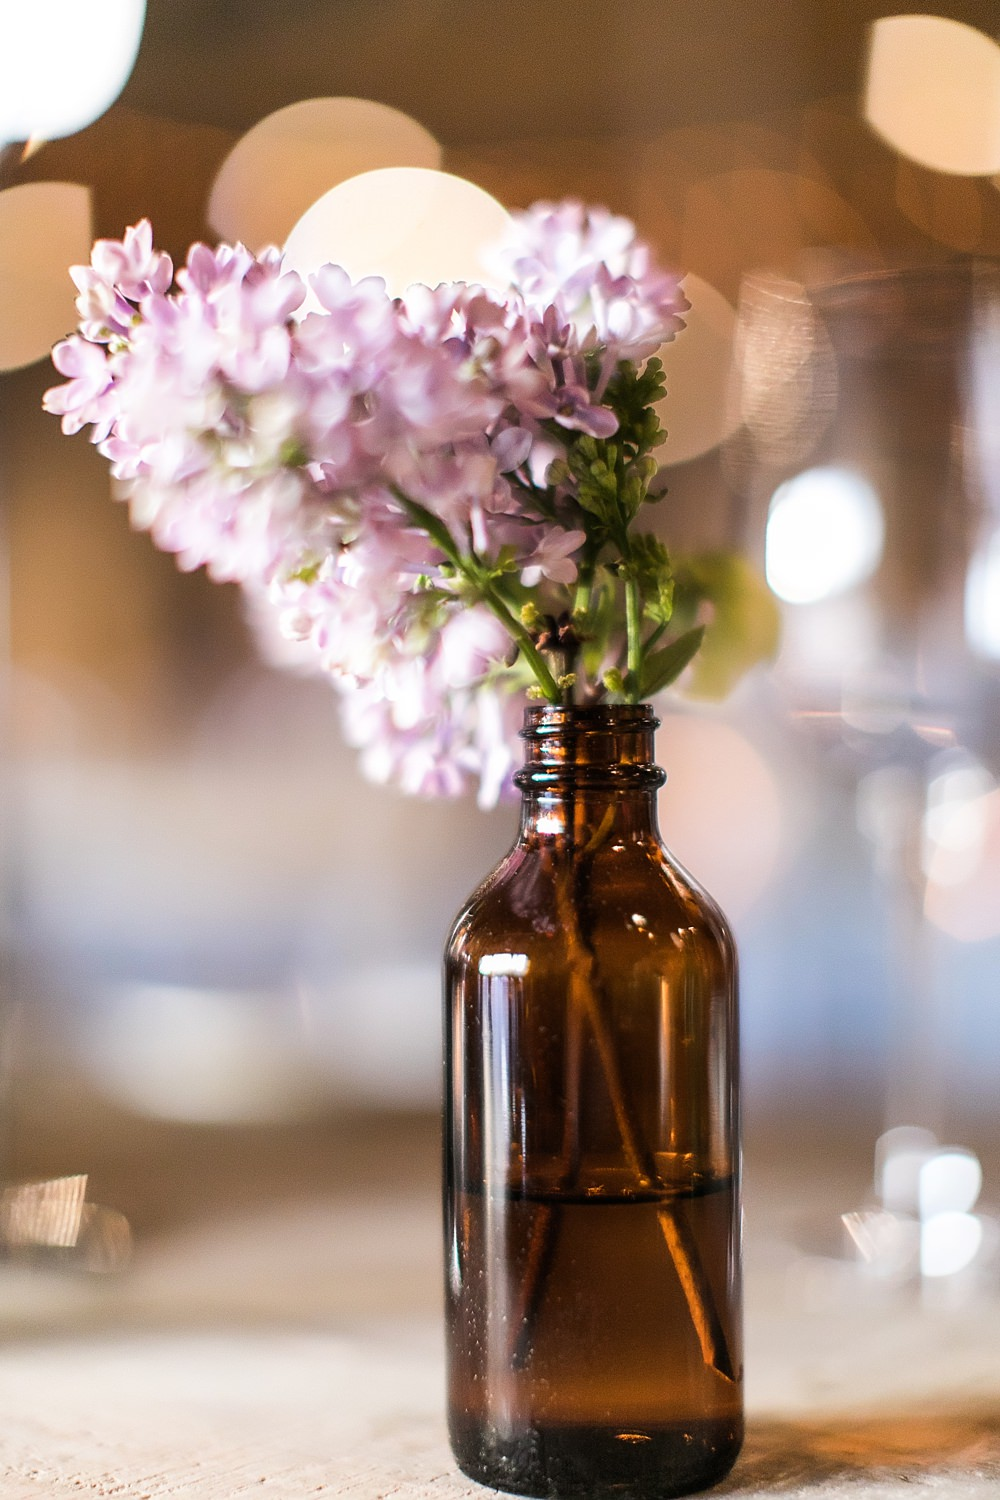 stave room : vue photography : adaptations floral : evermore events0057